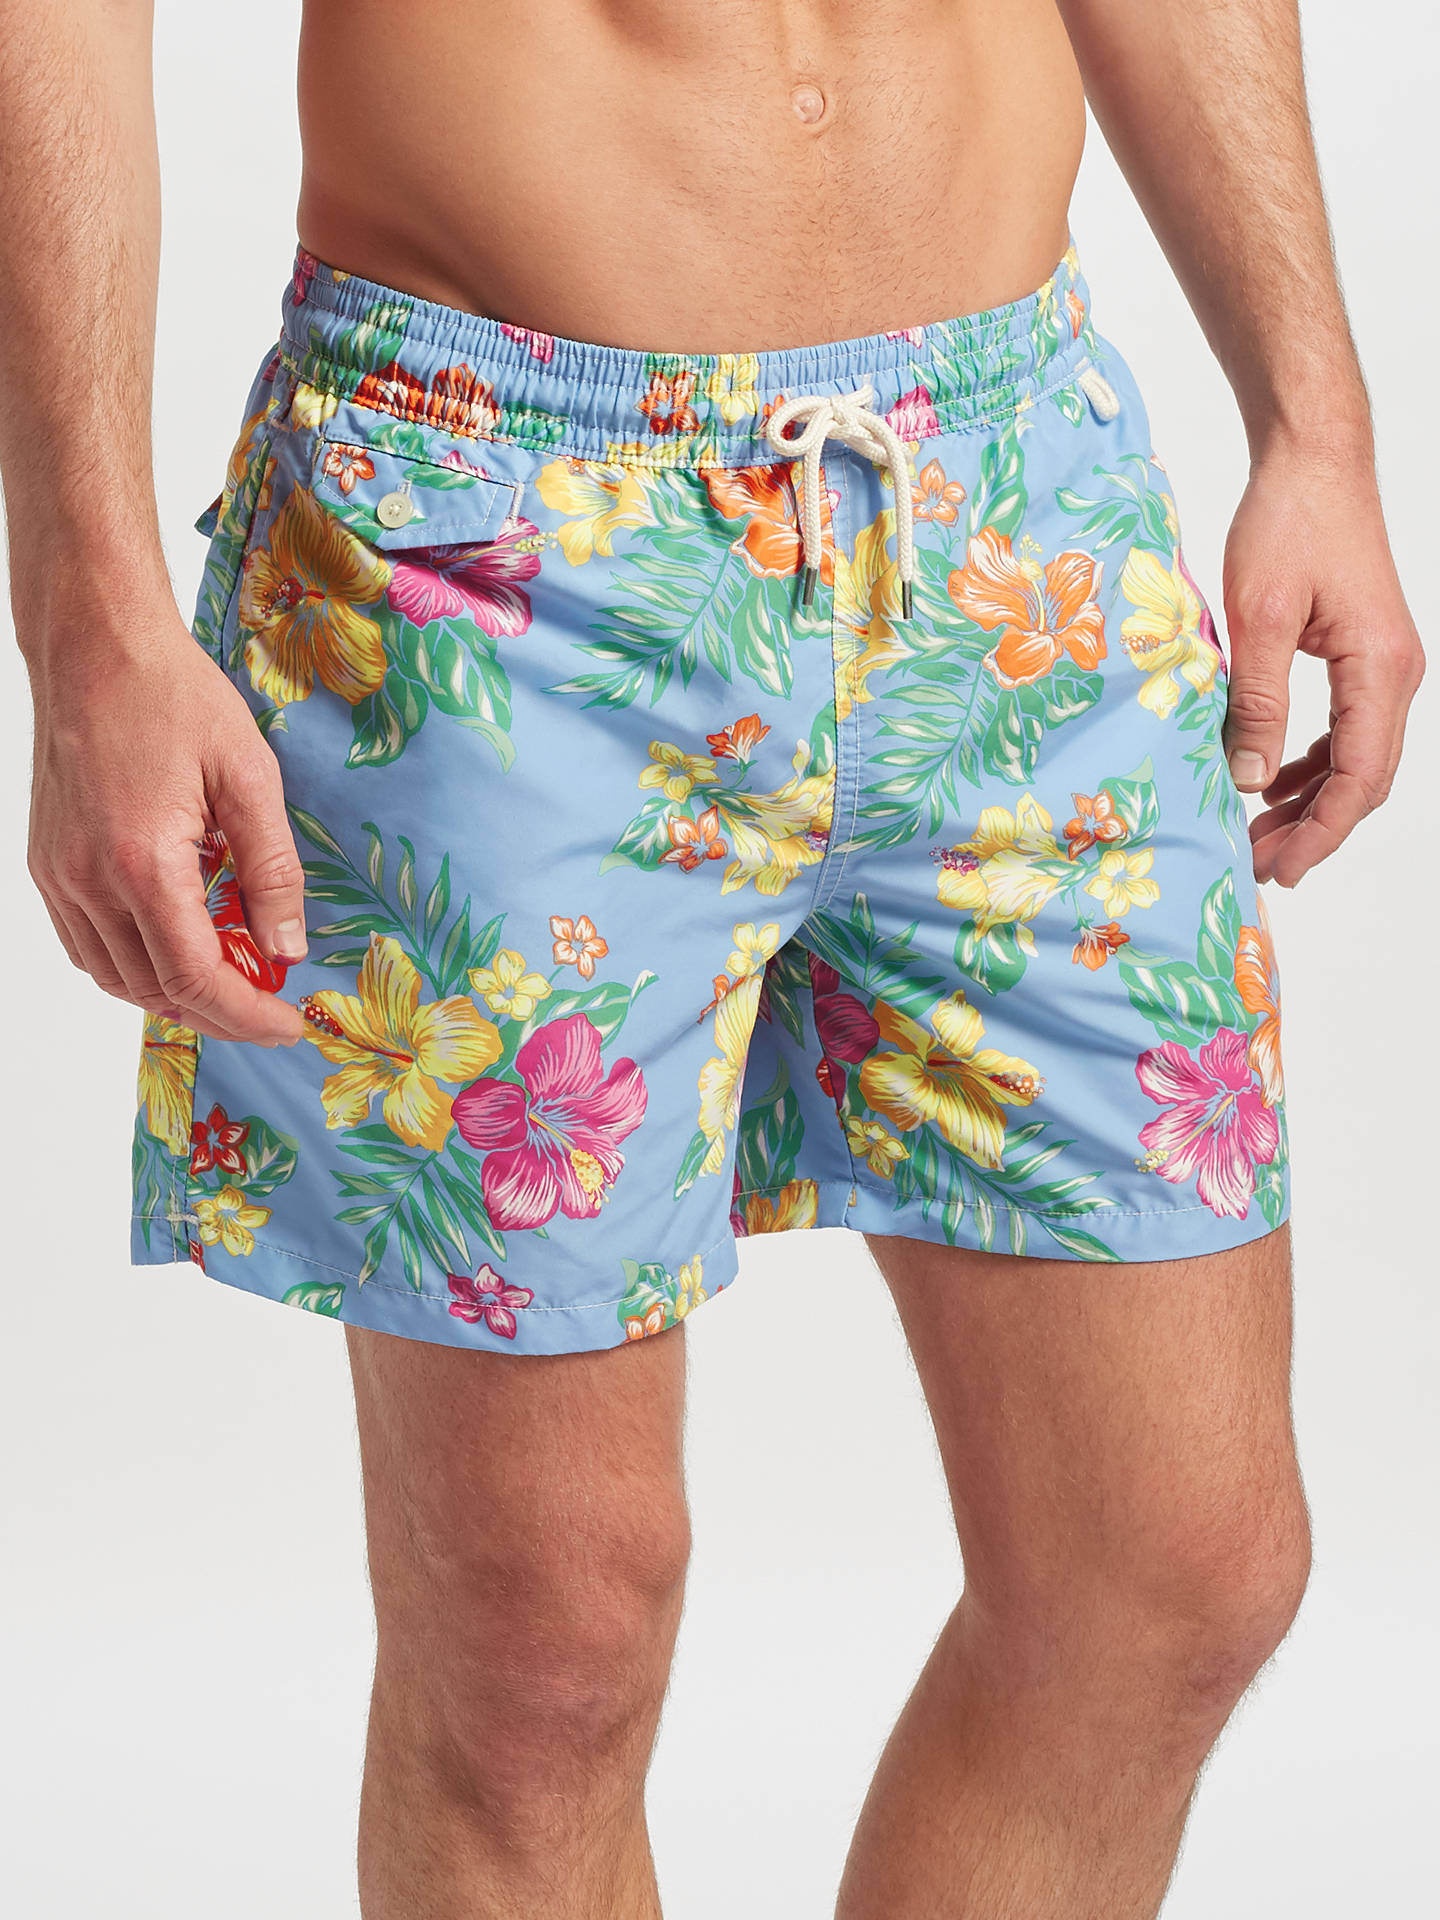 acbbe148c9 Buy Polo Ralph Lauren Traveller Hibiscus Tropical Print Swim Shorts, Blue,  S Online at ...